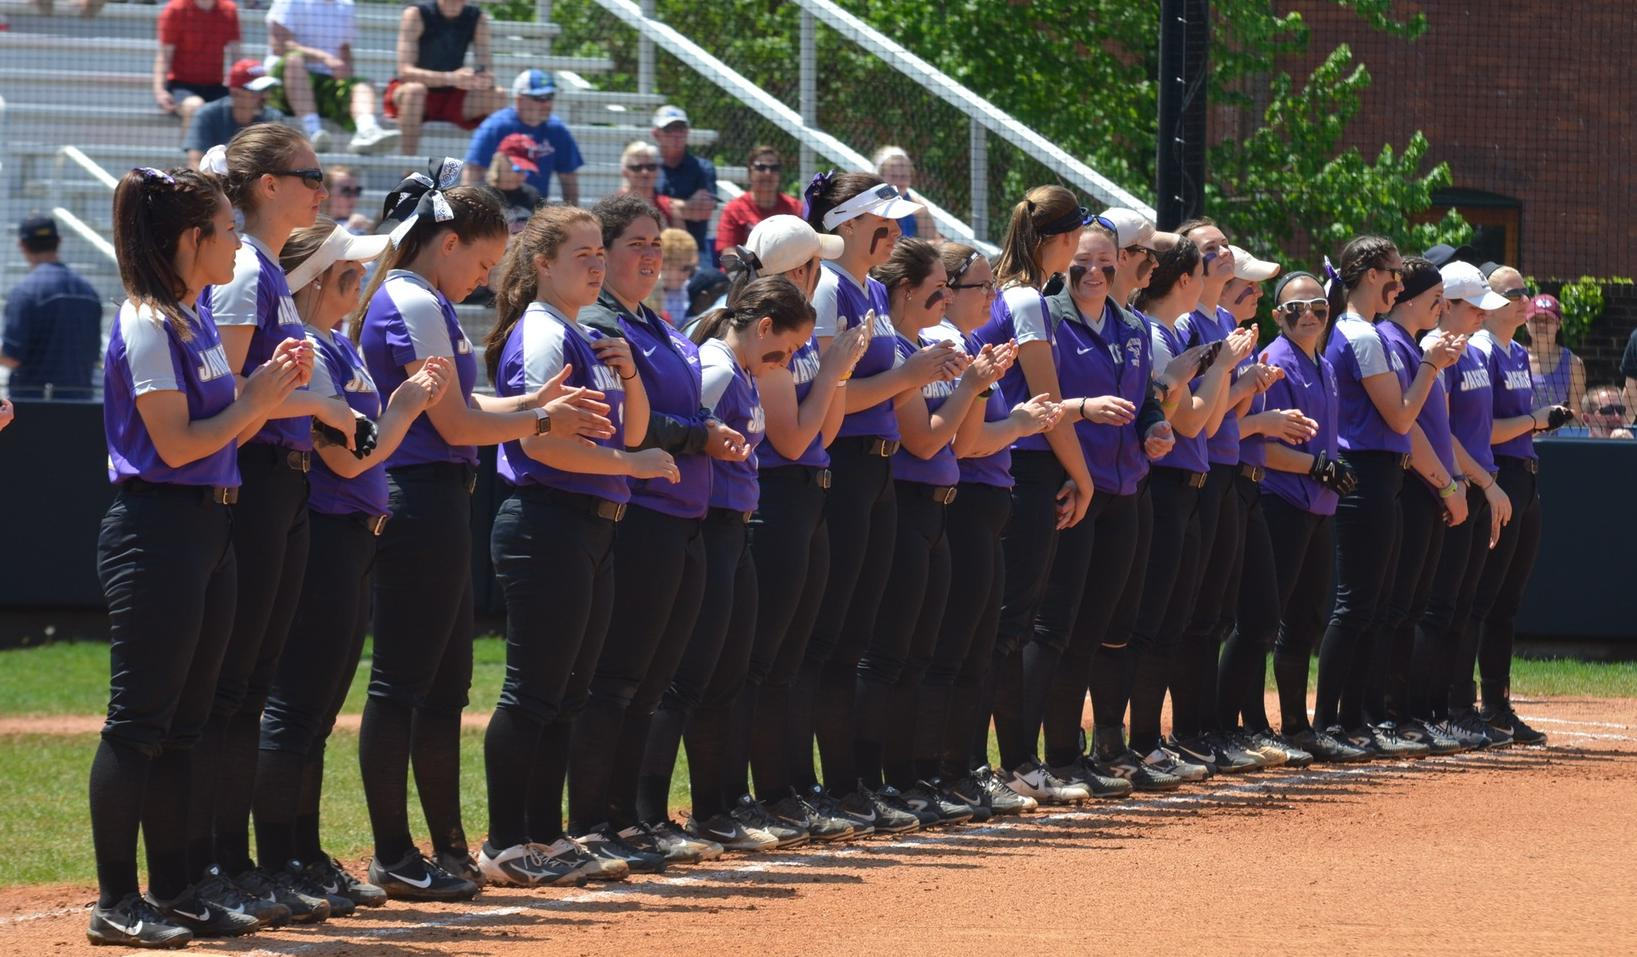 Softball Holds Extra Special Home Run Derby